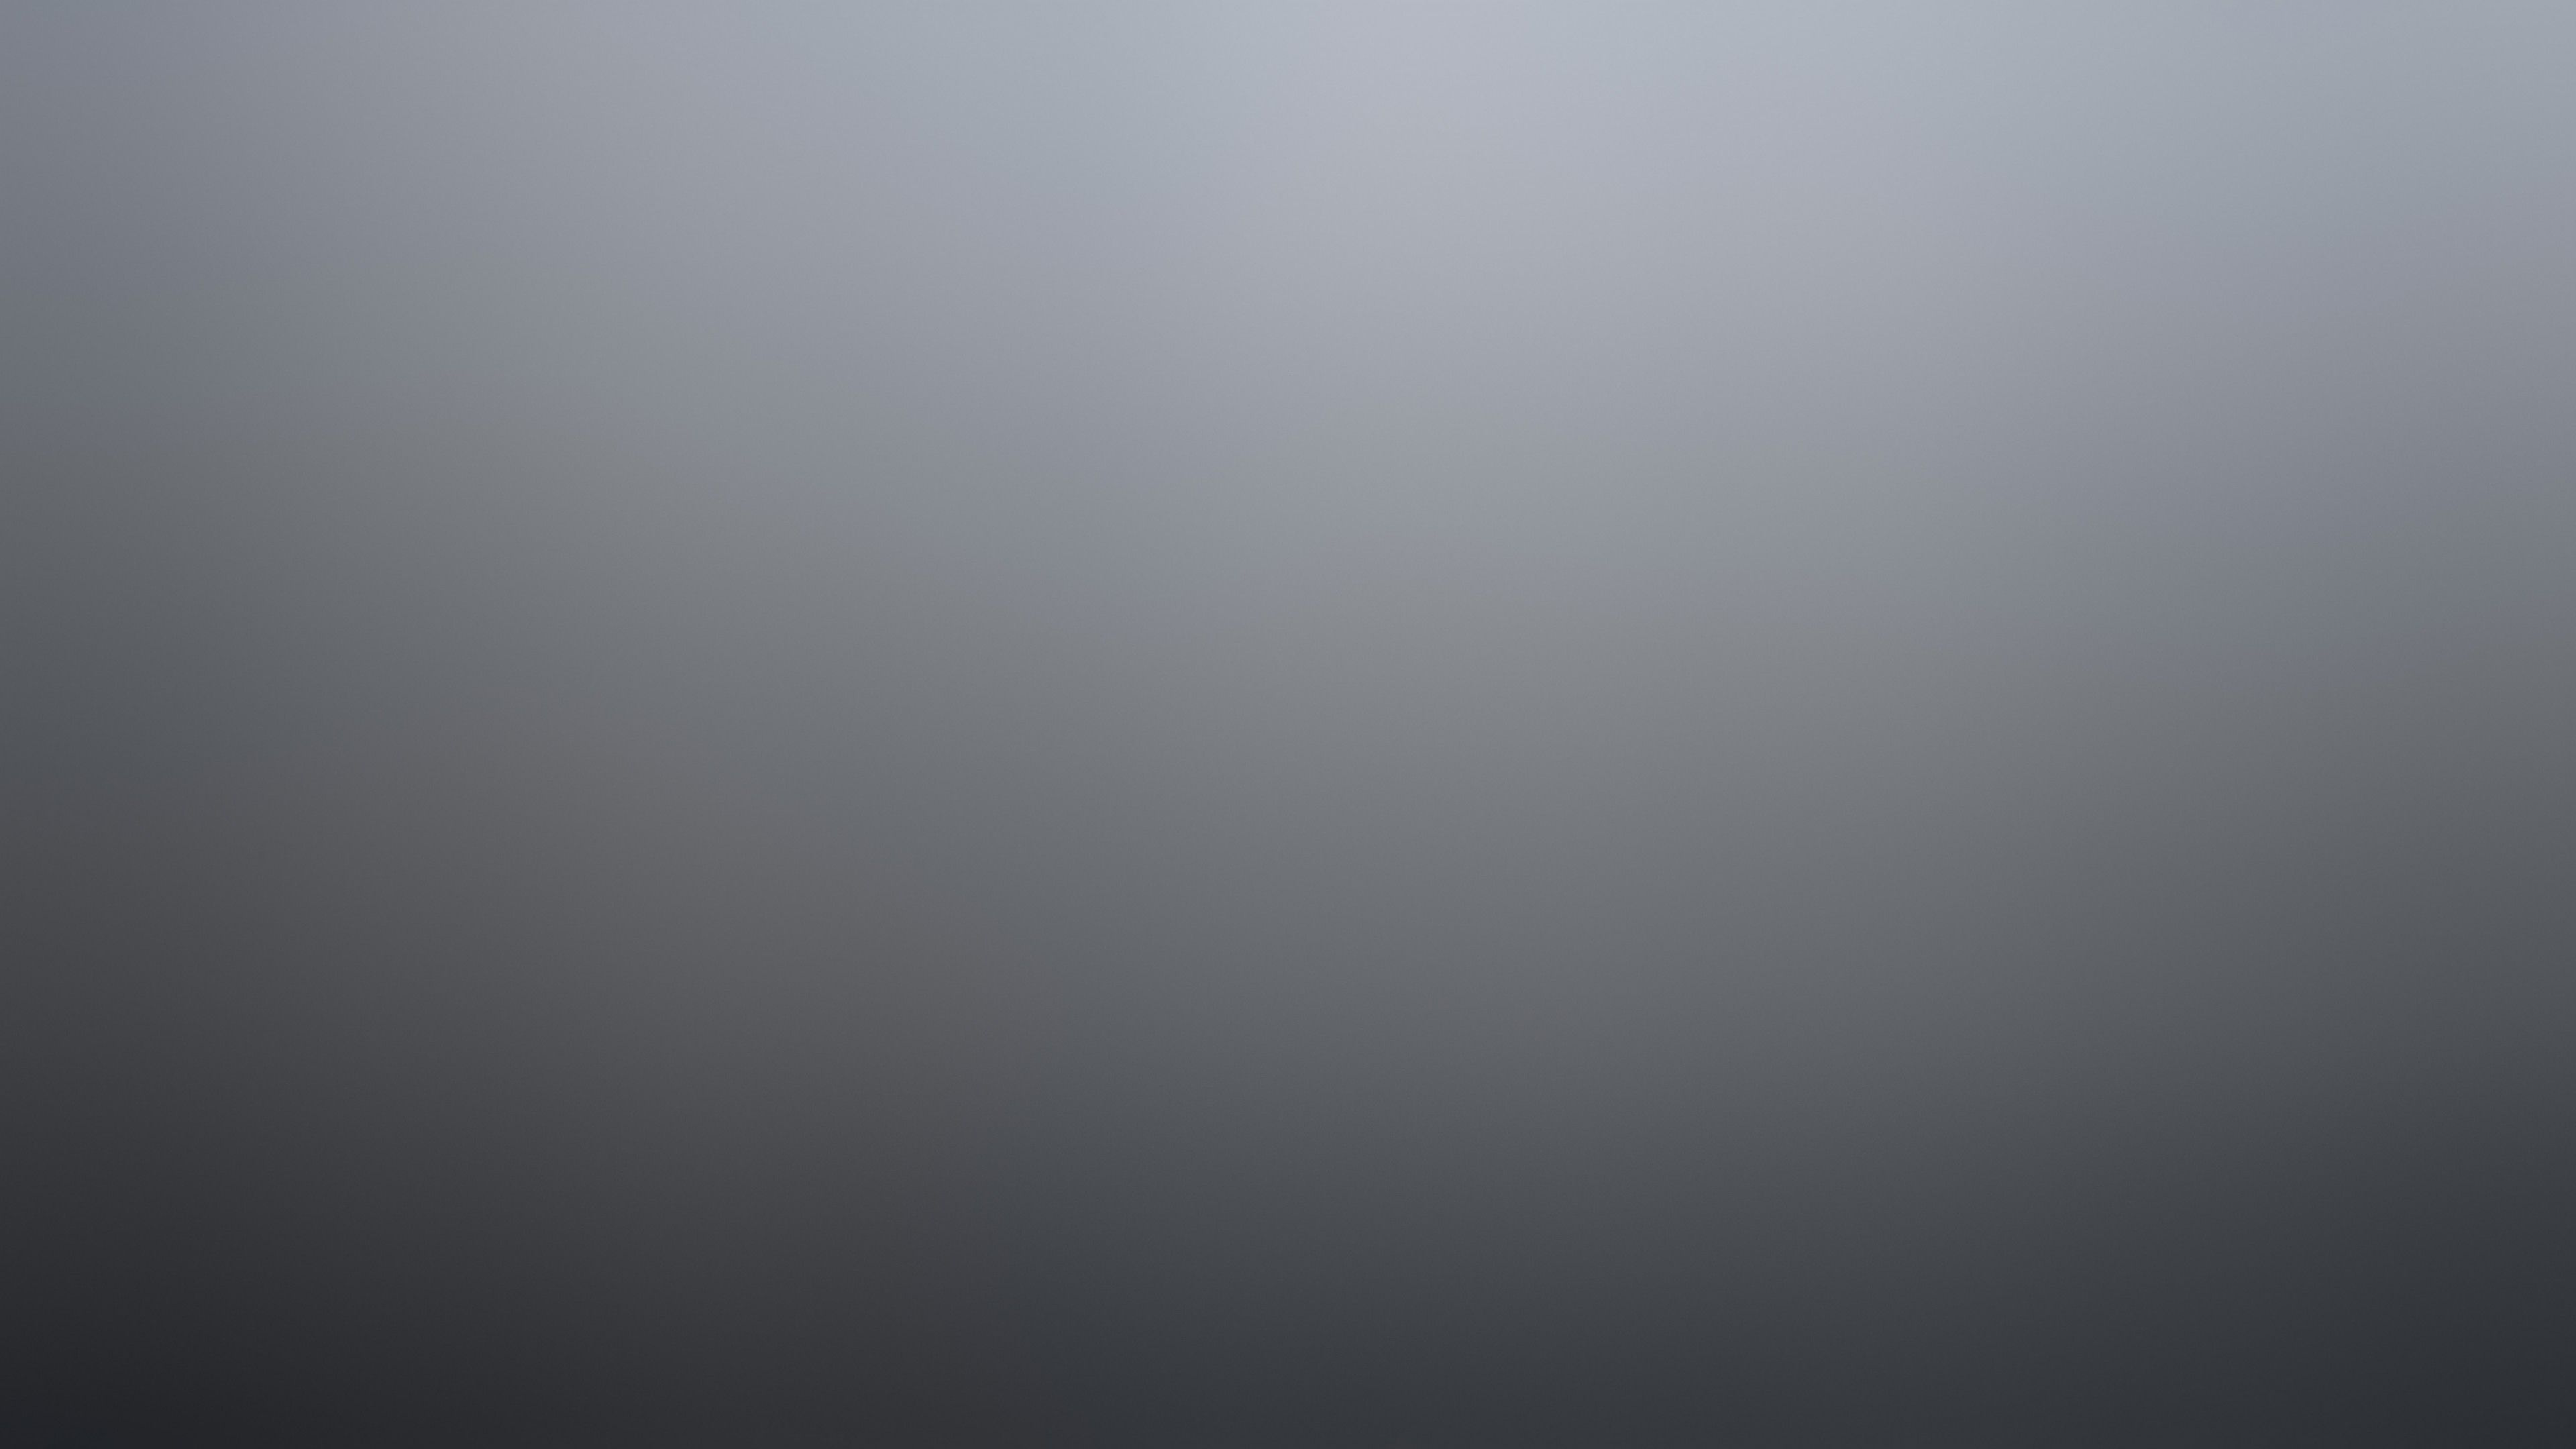 3840x2160 grey 4K wallpapers for your desktop or mobile screen free ...